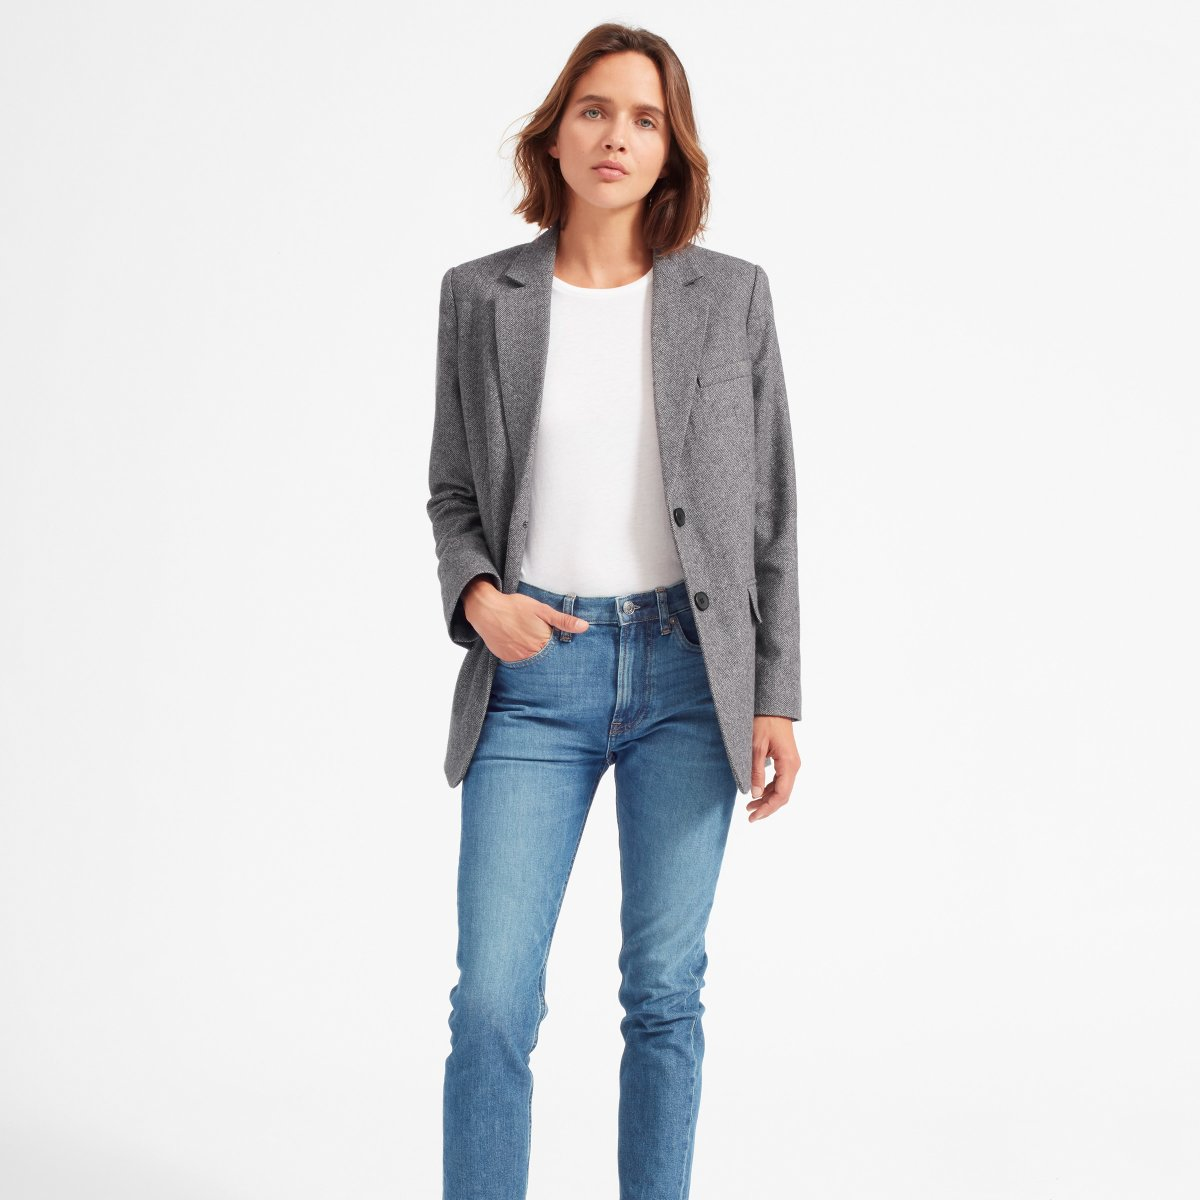 oversized blazer - Having a blazer at your disposal is a great way to make any outfit more professional. I love to travel in blazers so that it looks like I'm going somewhere important!